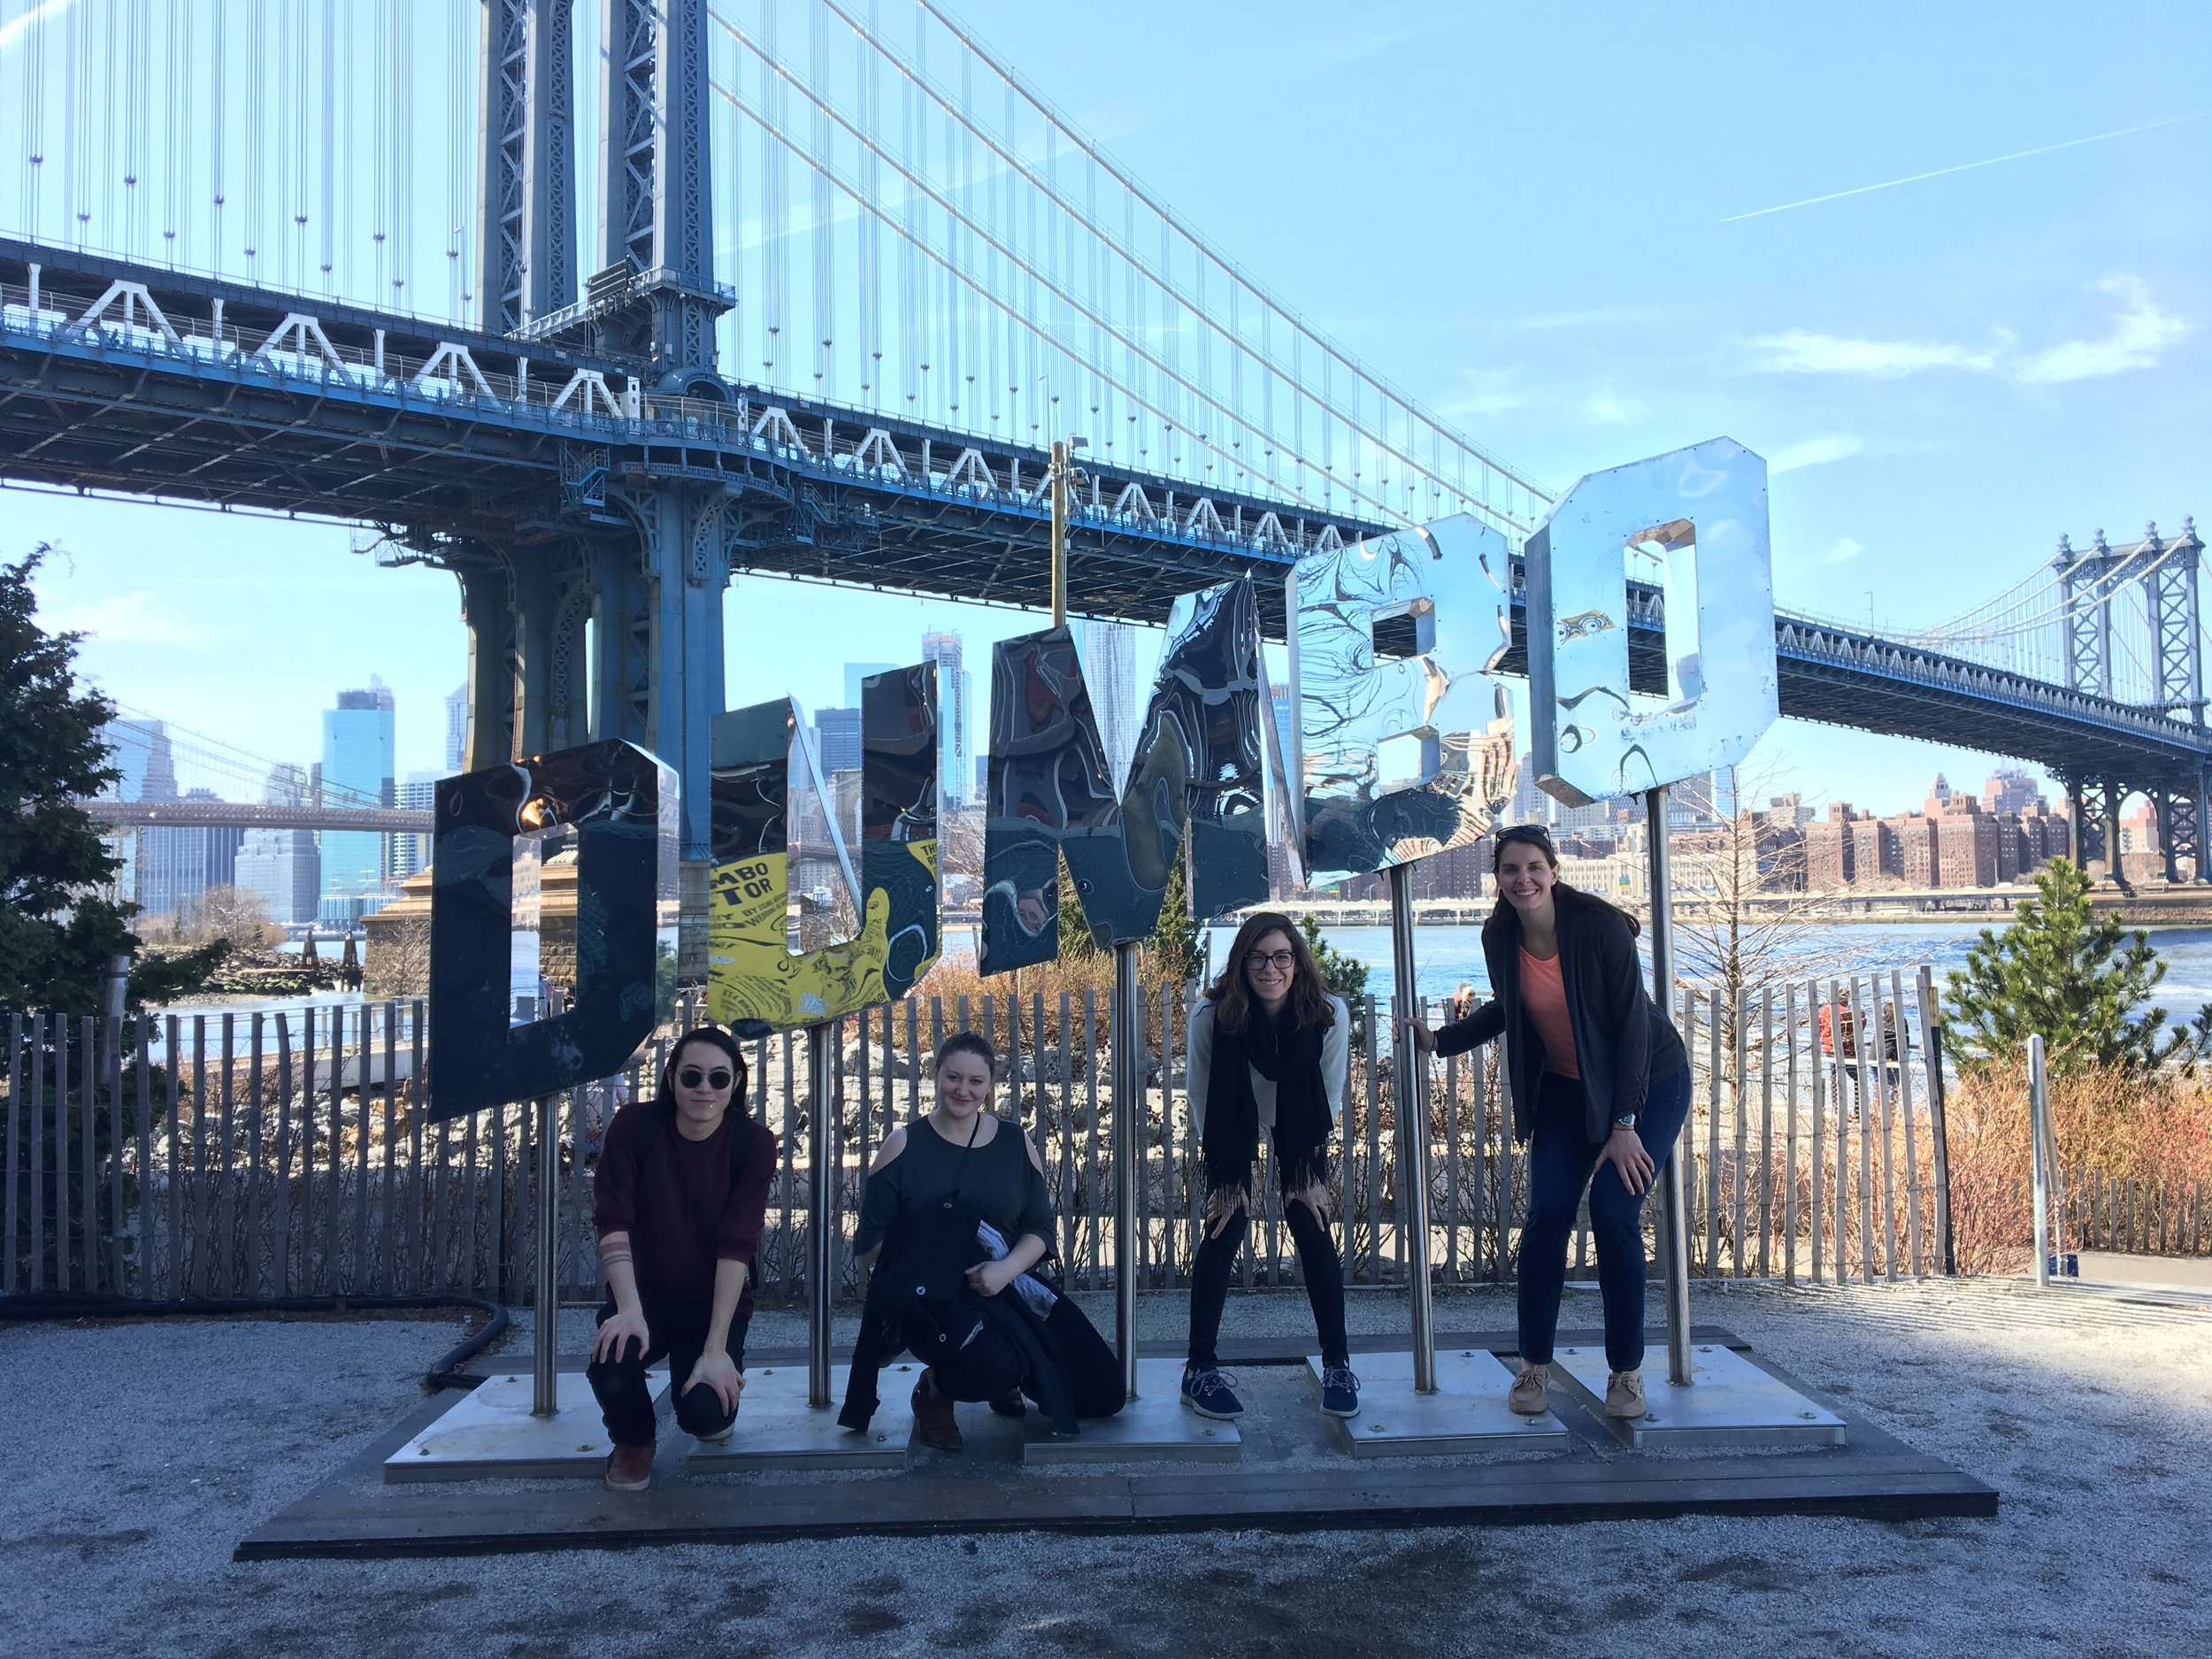 - We'd love to stay in touch on social media. You can find us onInstagram:@lightfootmarketFacebook:@lightfootmarketTwitter:@lightfootmarketPhoto: (left to right) Isa Wang (Co-Founder), Sarah Sproviero (Co-Founder) Julia Mellon, Kristin Hanczor*Photo taken on self-timer by the Lightfoot Market team